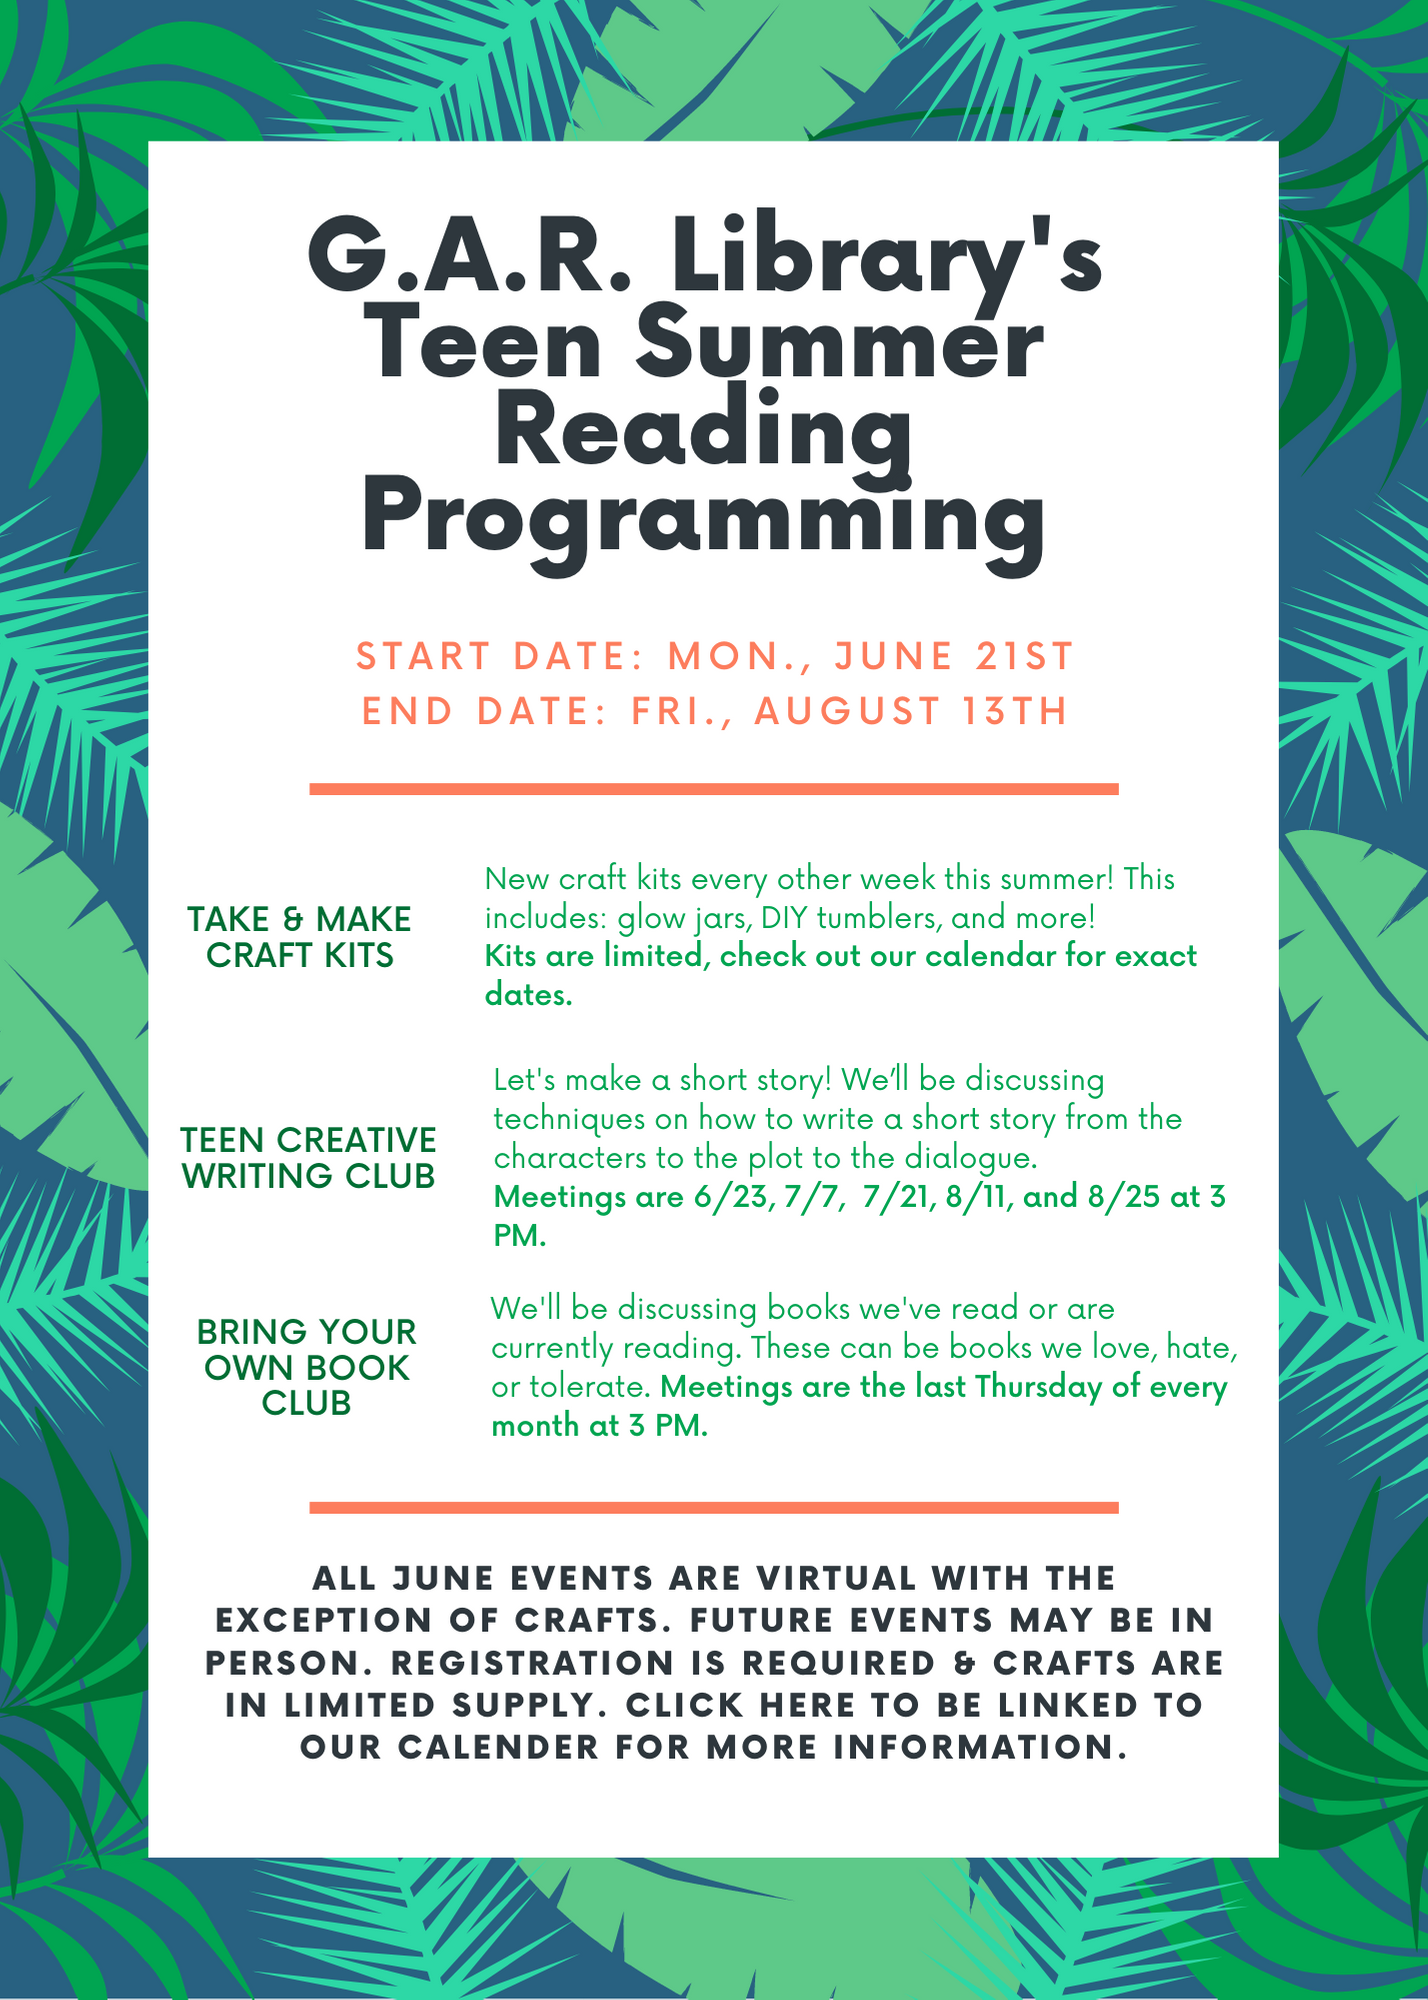 Flier of the list of summer events. Please check out our calendar for more details with dates and times.